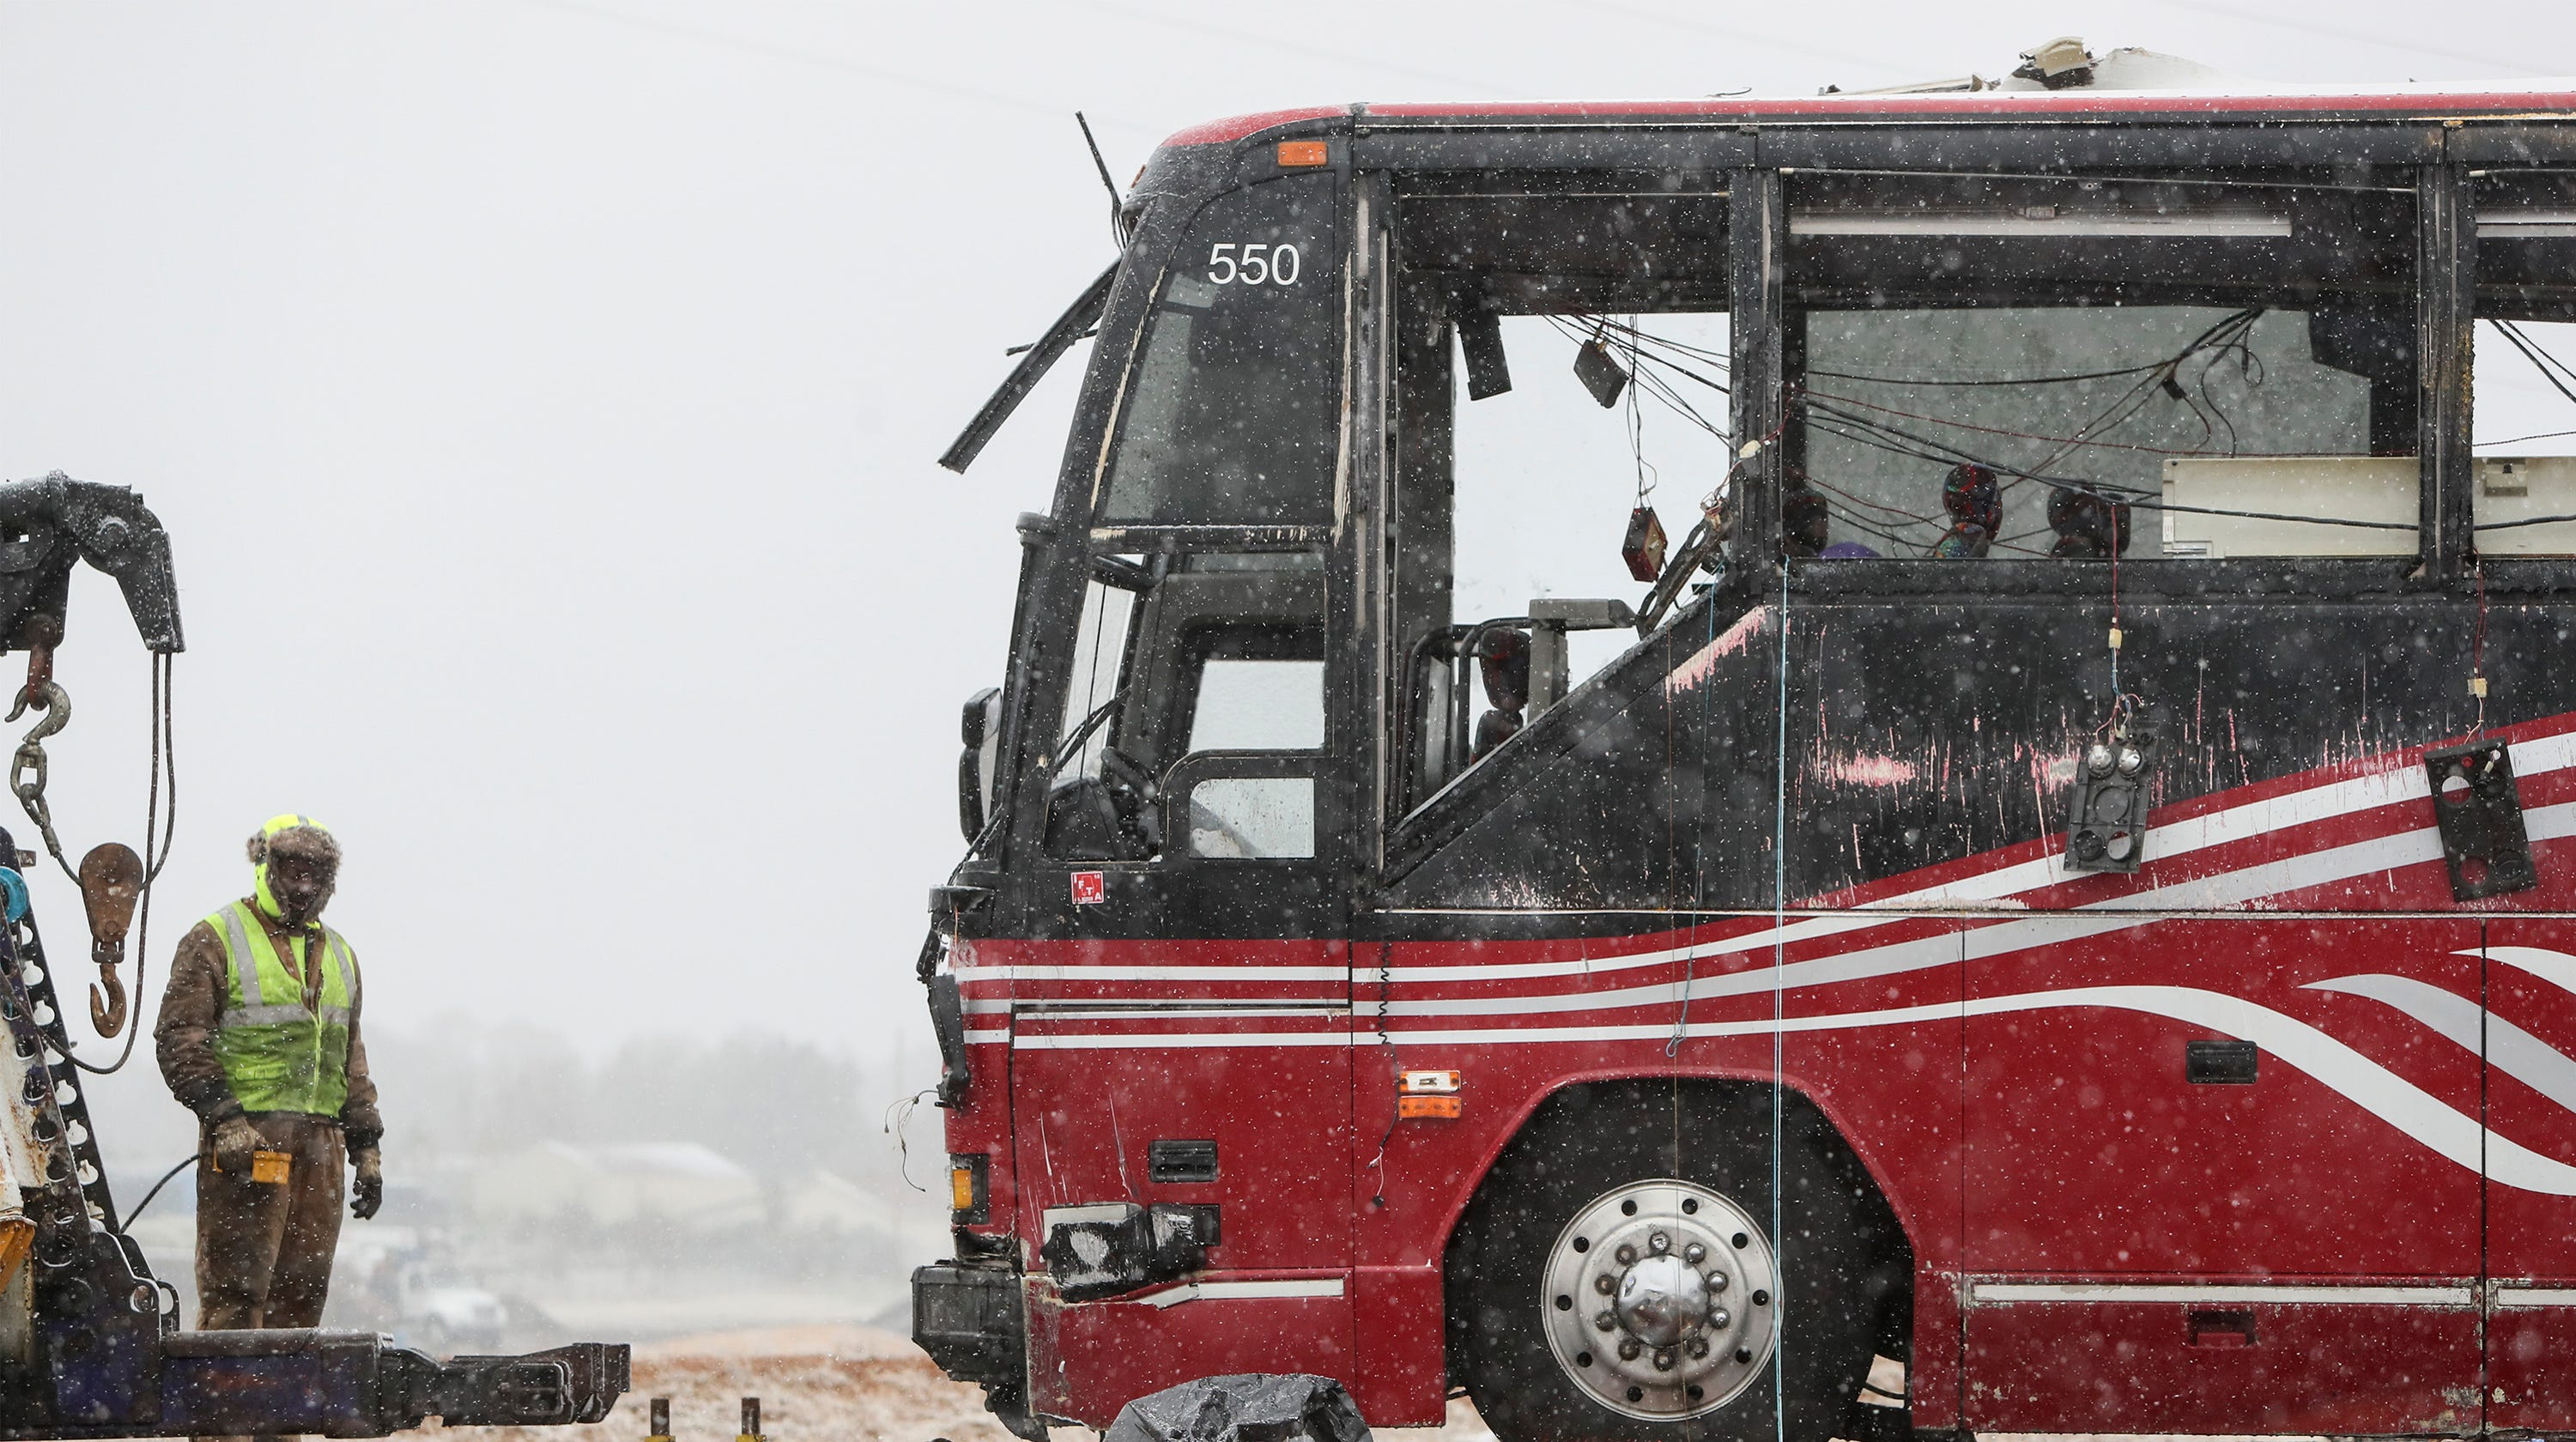 Mississippi tour bus crash: 2 confirmed dead, 44 injured on